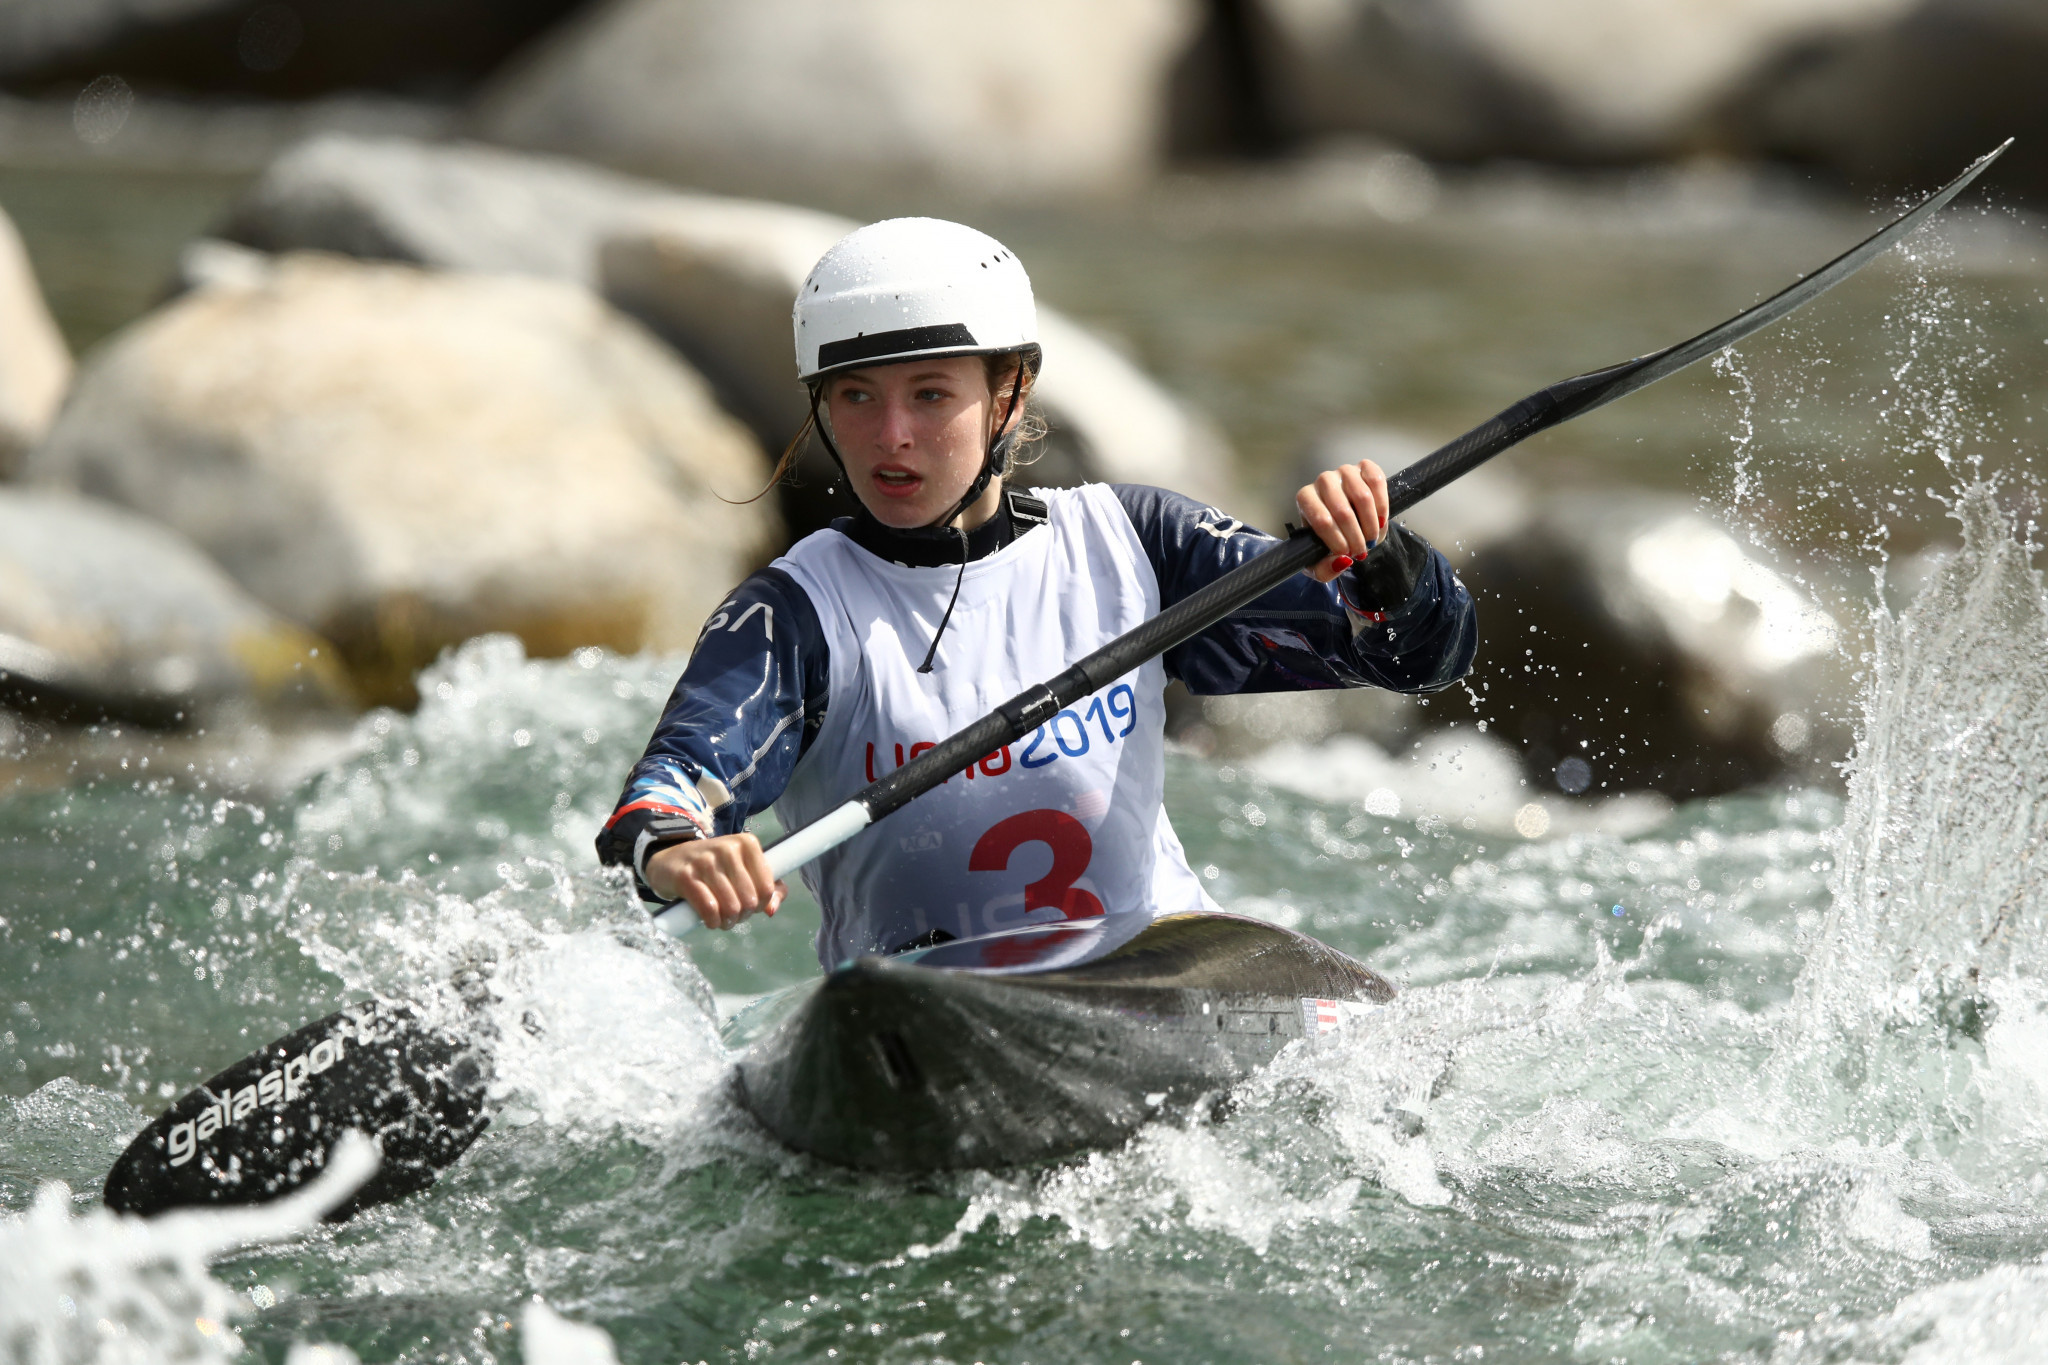 Teenagers Leibfarth and Joseph star in heats of ICF Canoe Slalom World Cup